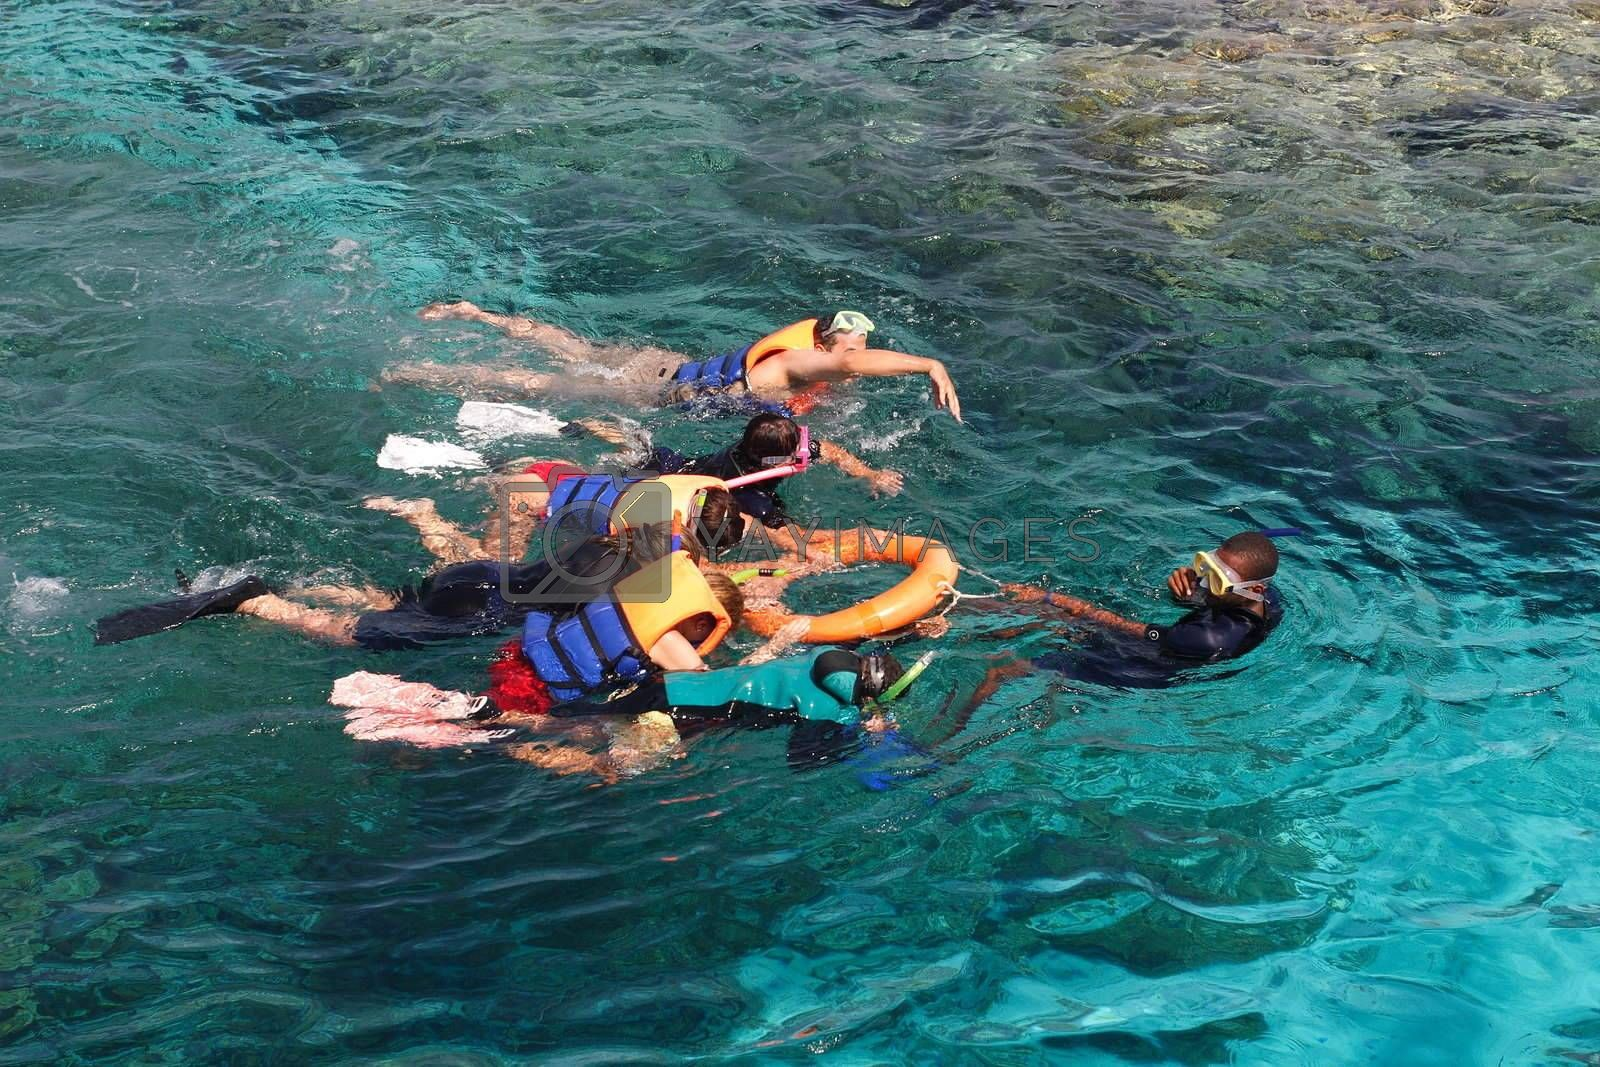 The group of people is engaged swimming in the sea with the instructor